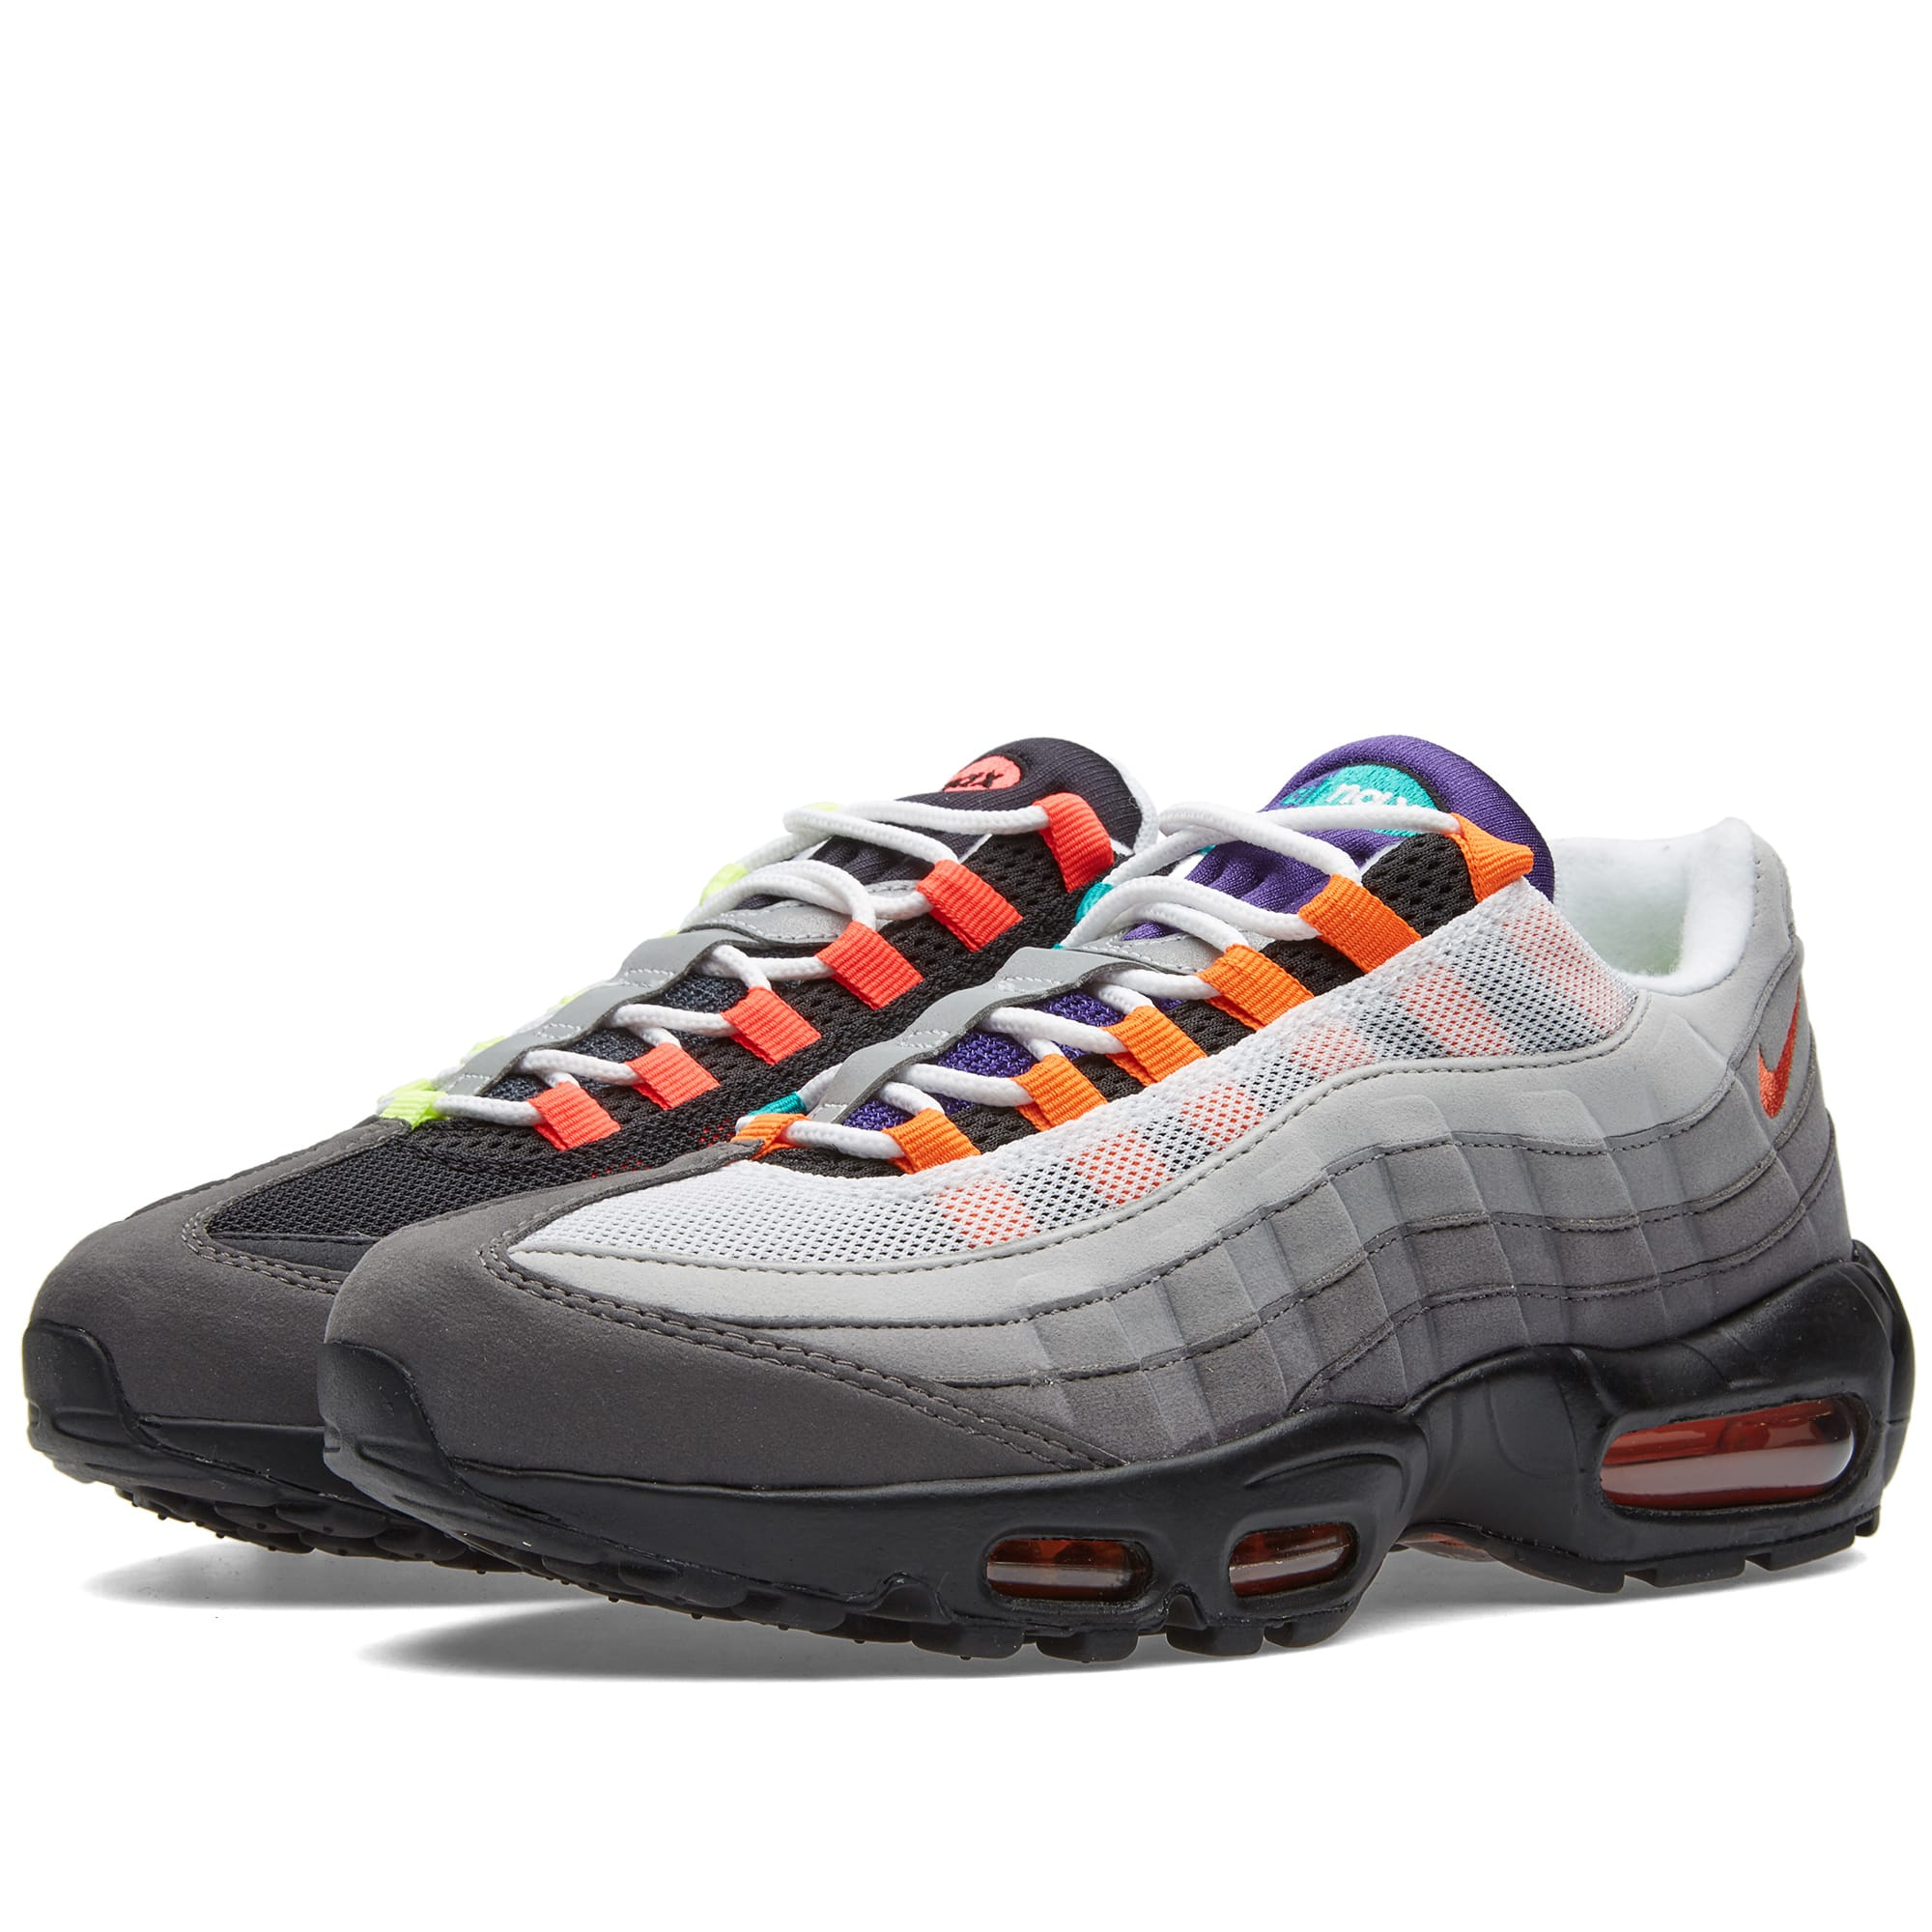 pretty nice 23153 5c551 Nike Air Max 95 OG QS  Greedy  Black, Volt   Safety Orange   END.